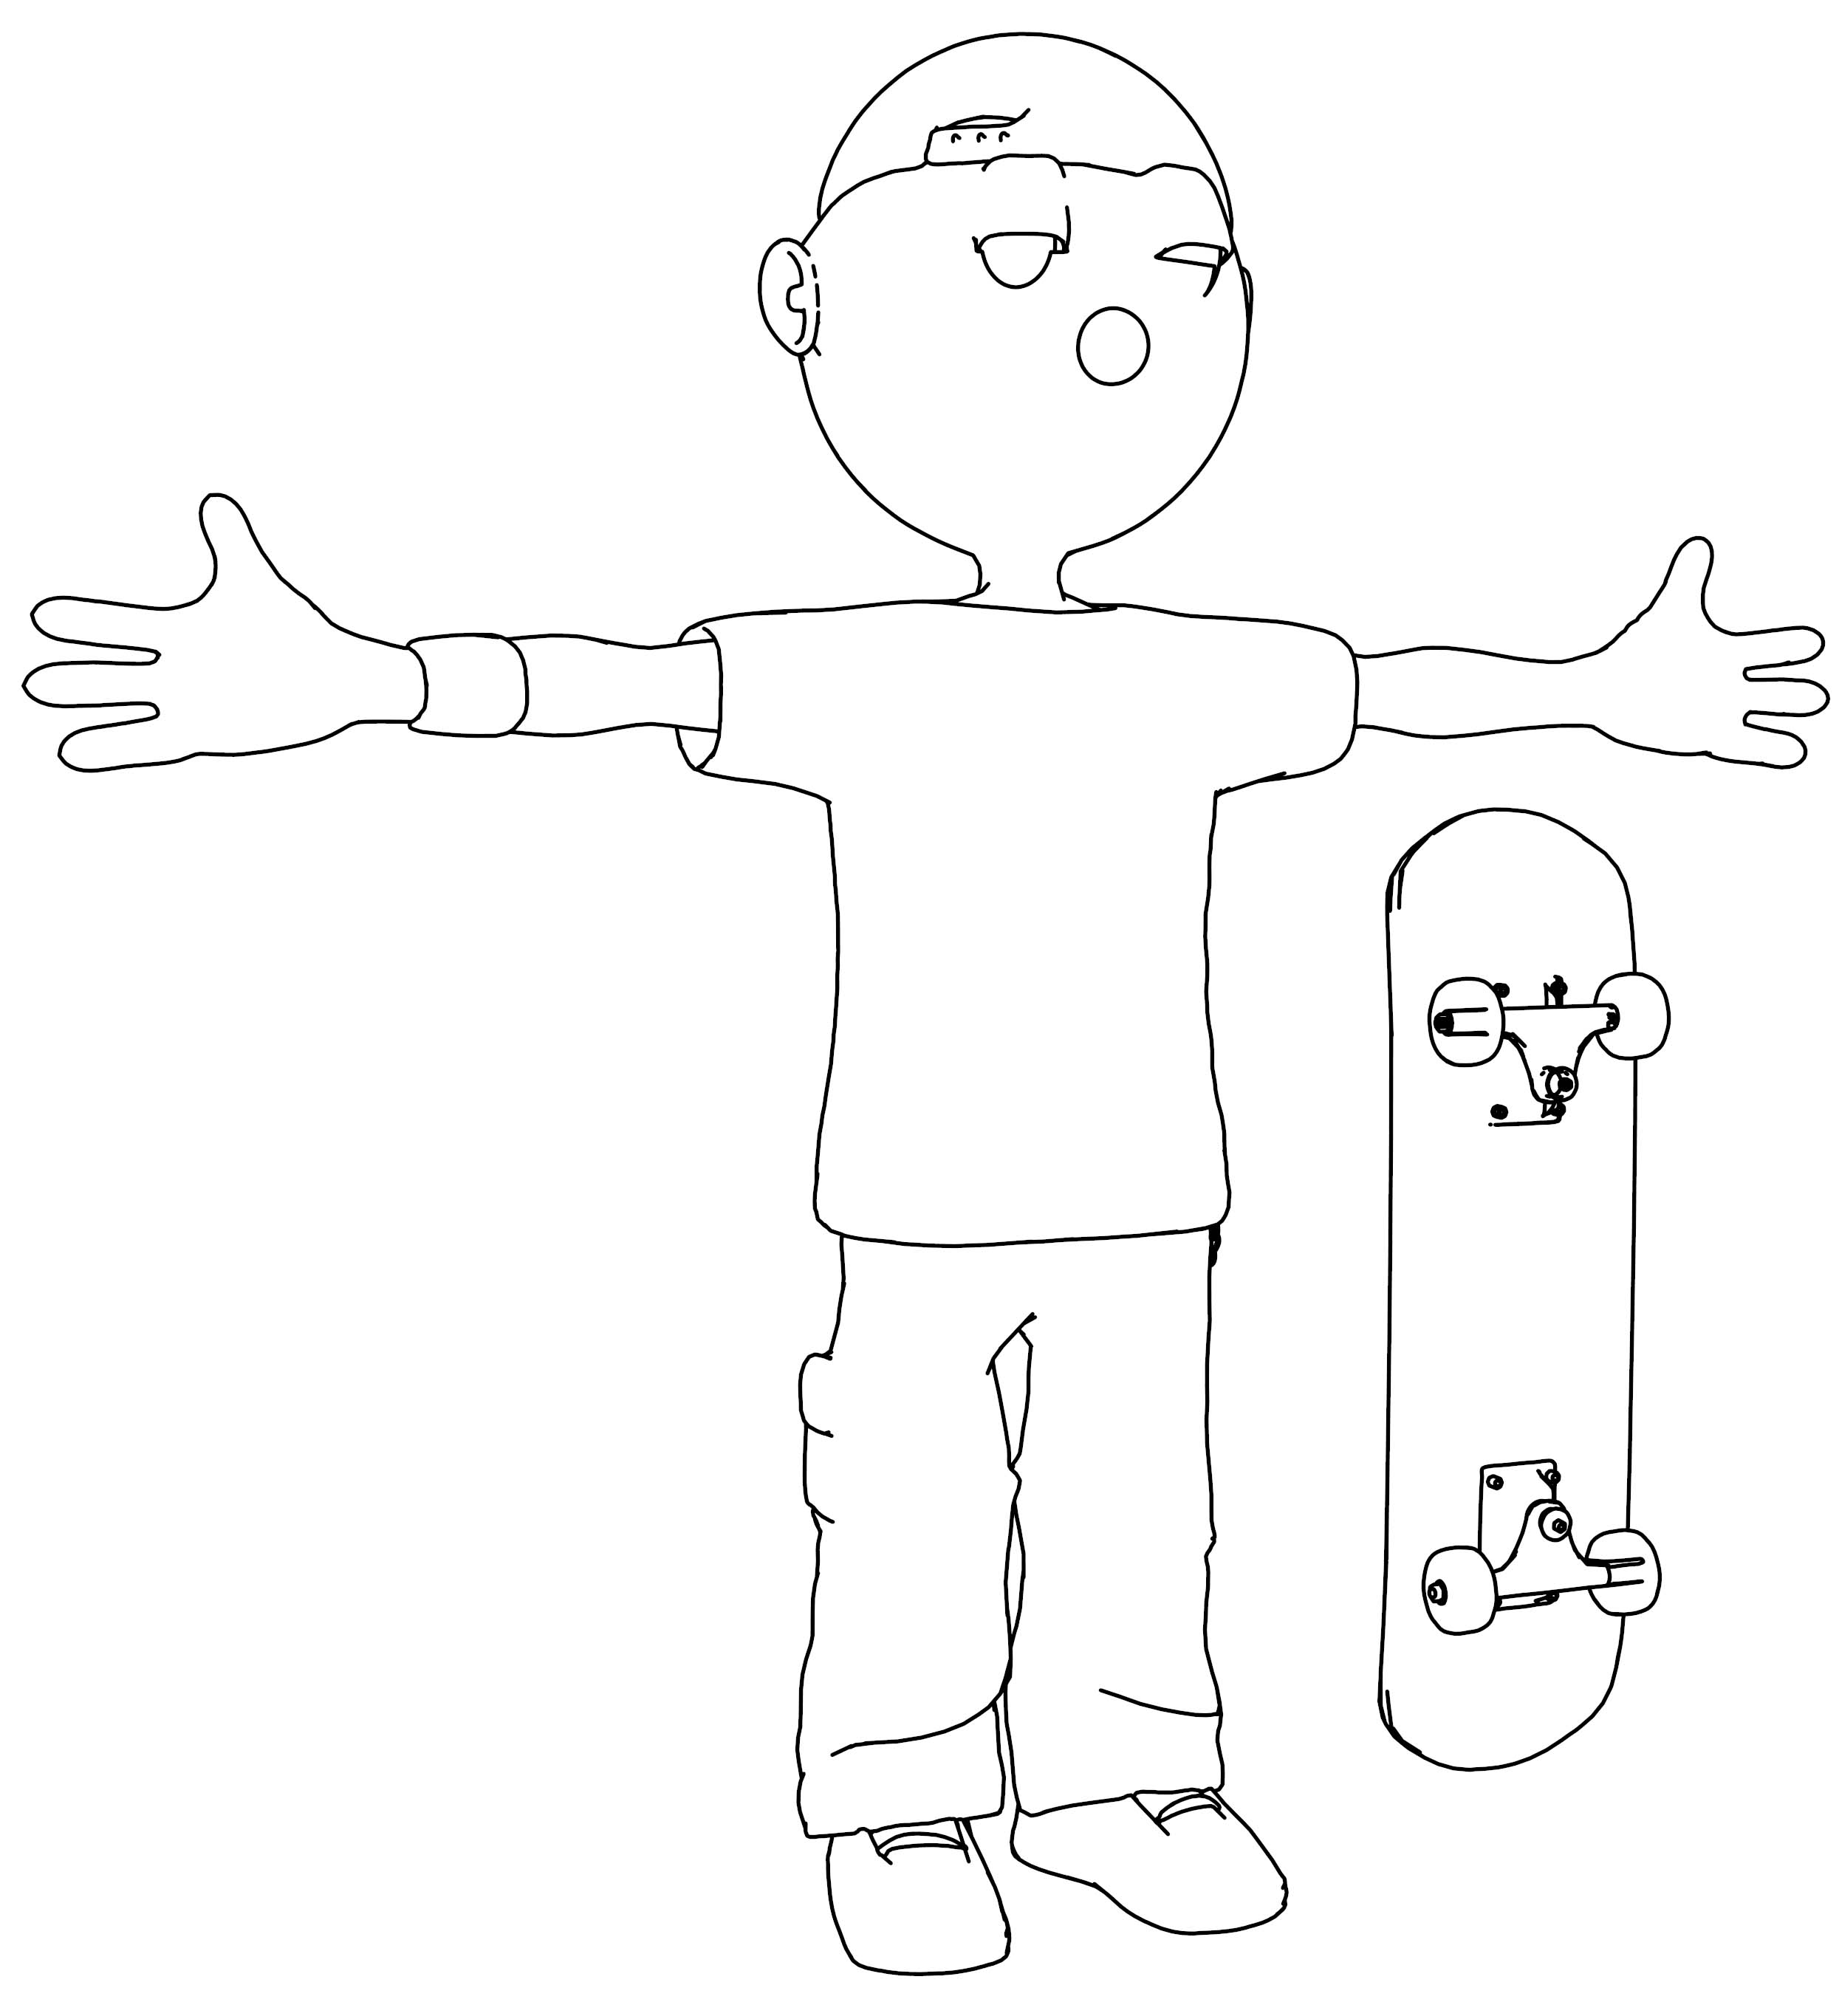 Cool Rap Skateboard Coloring Page